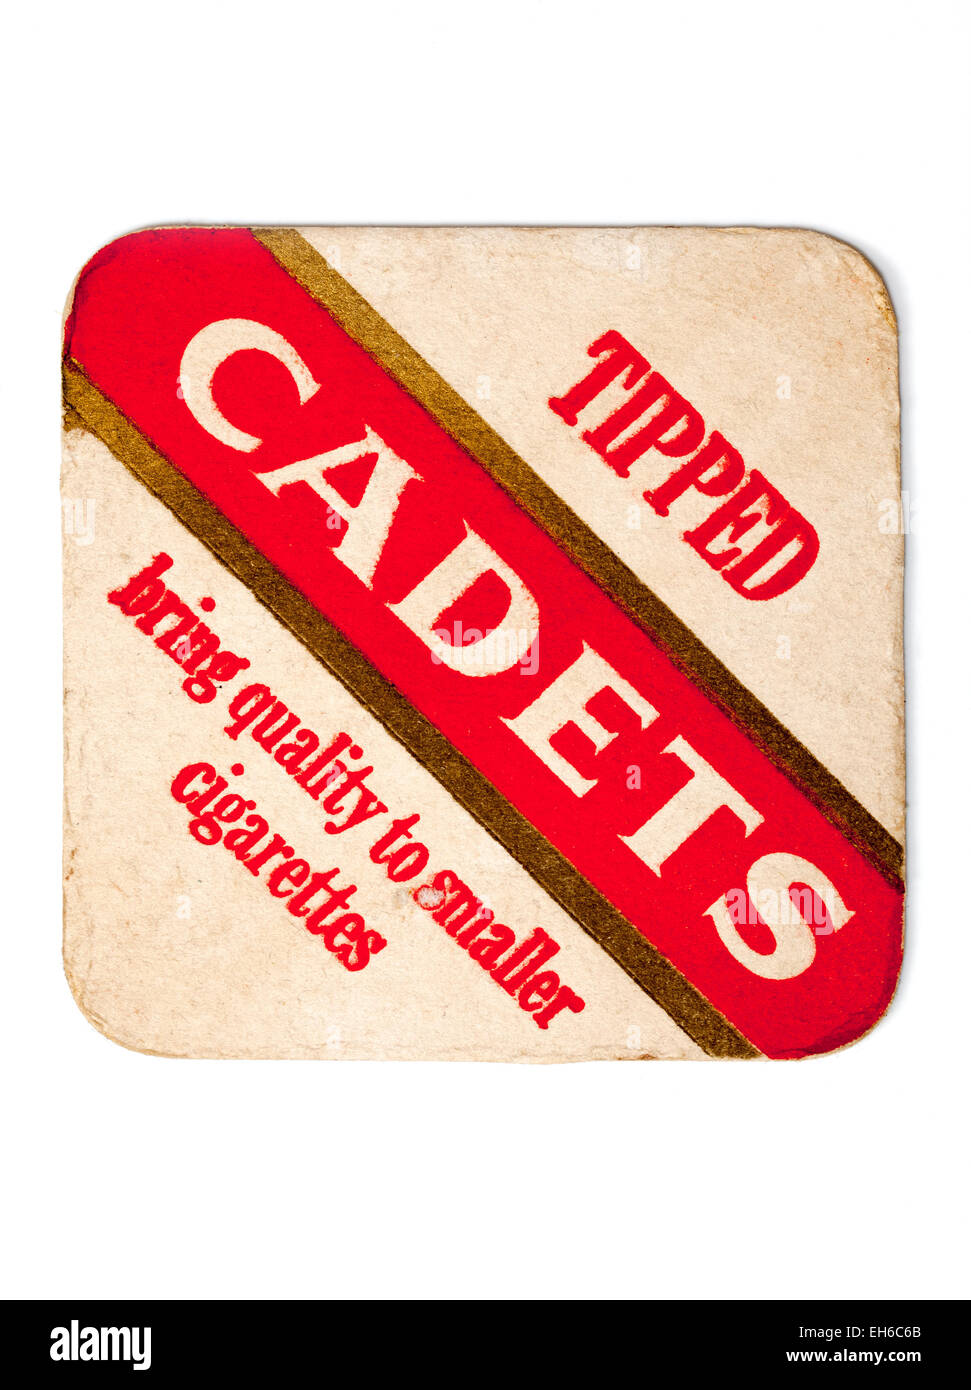 Vintage British Beermat Advertising Cadets Cigarettes - Stock Image